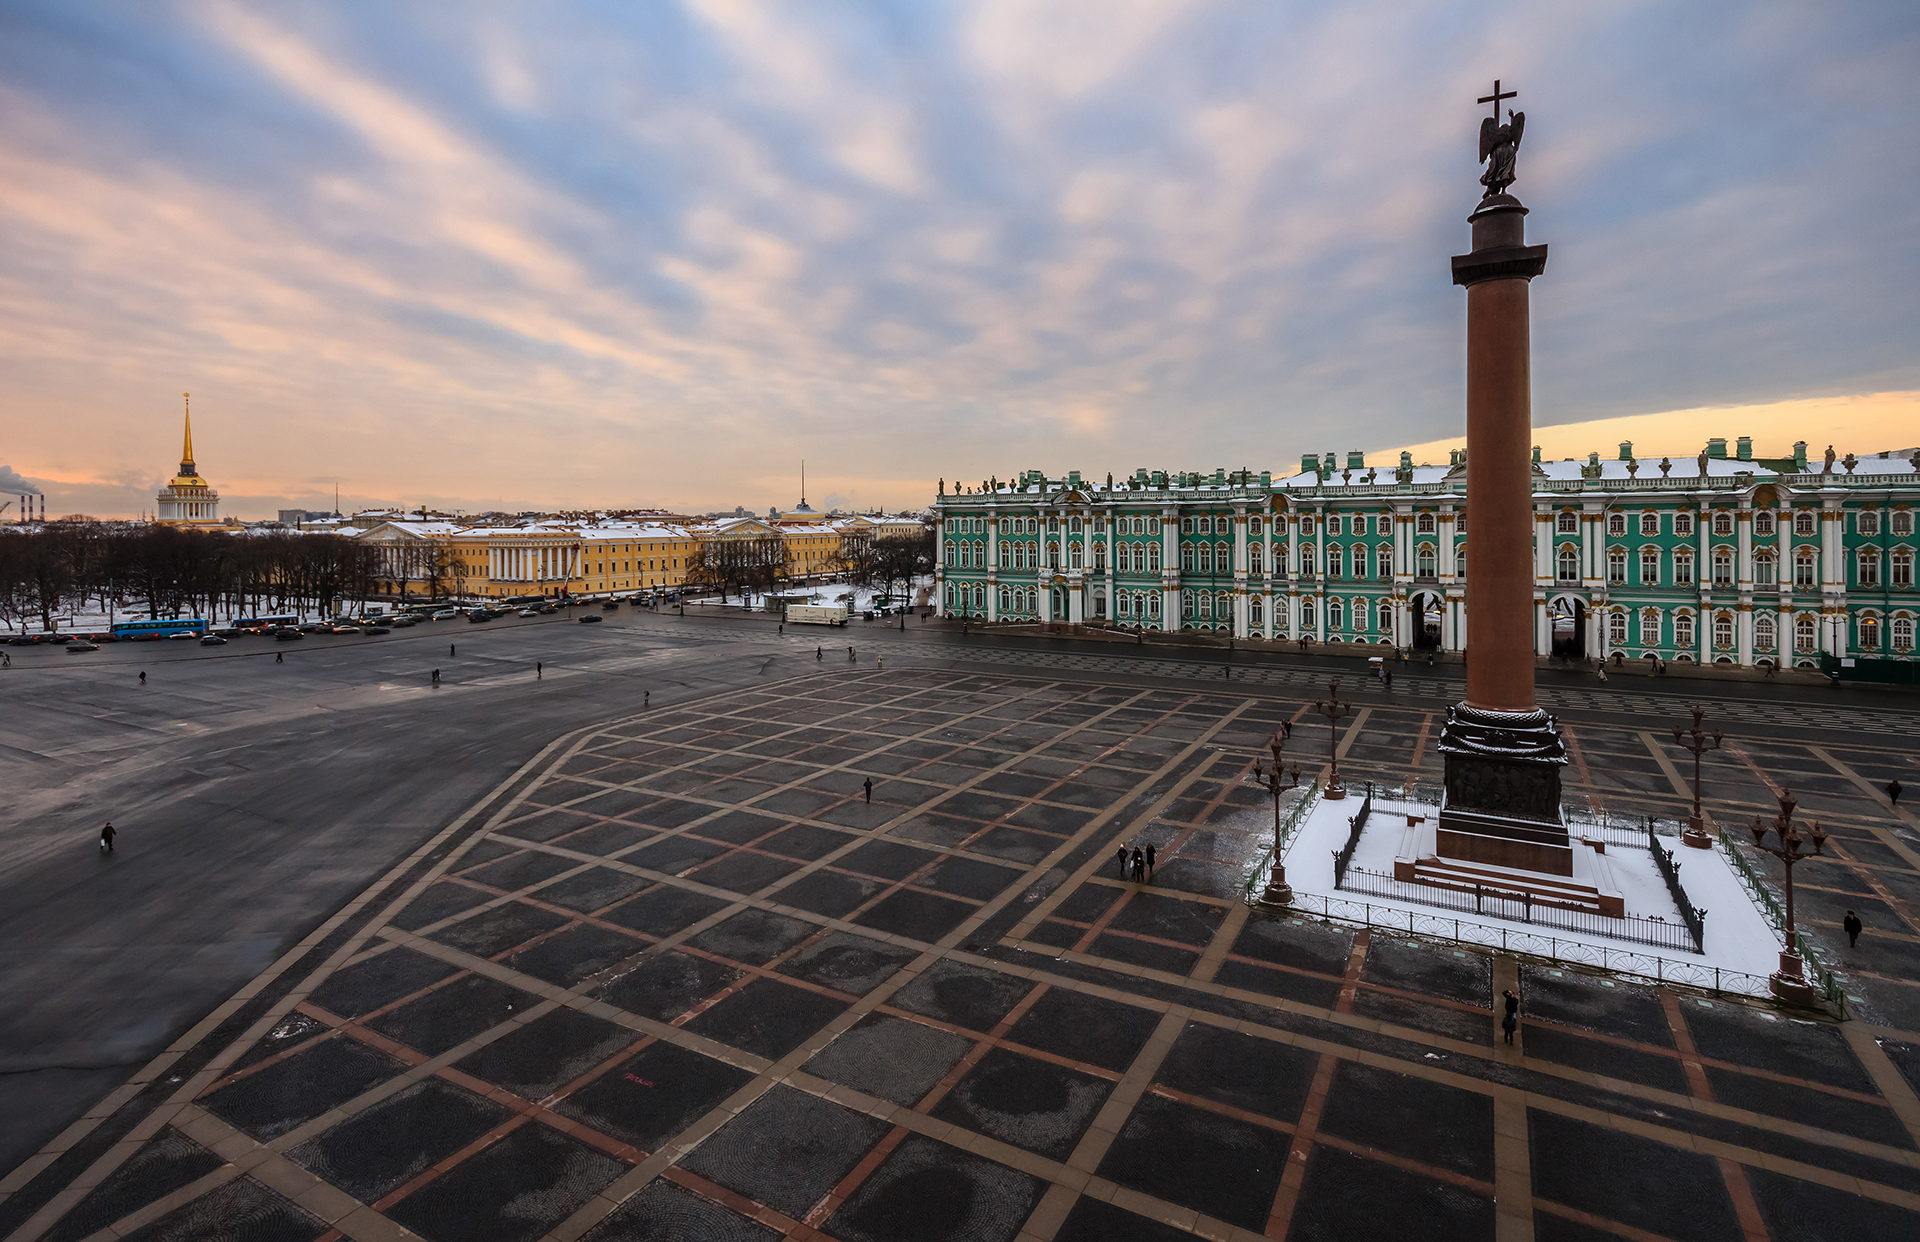 St. Petersburg's Hermitage Museum is the treasure chest of Russia. Founded by Empress Catherine the Great, the teal palace on the bank of the Neva River contains one of the world's most renowned art collections.